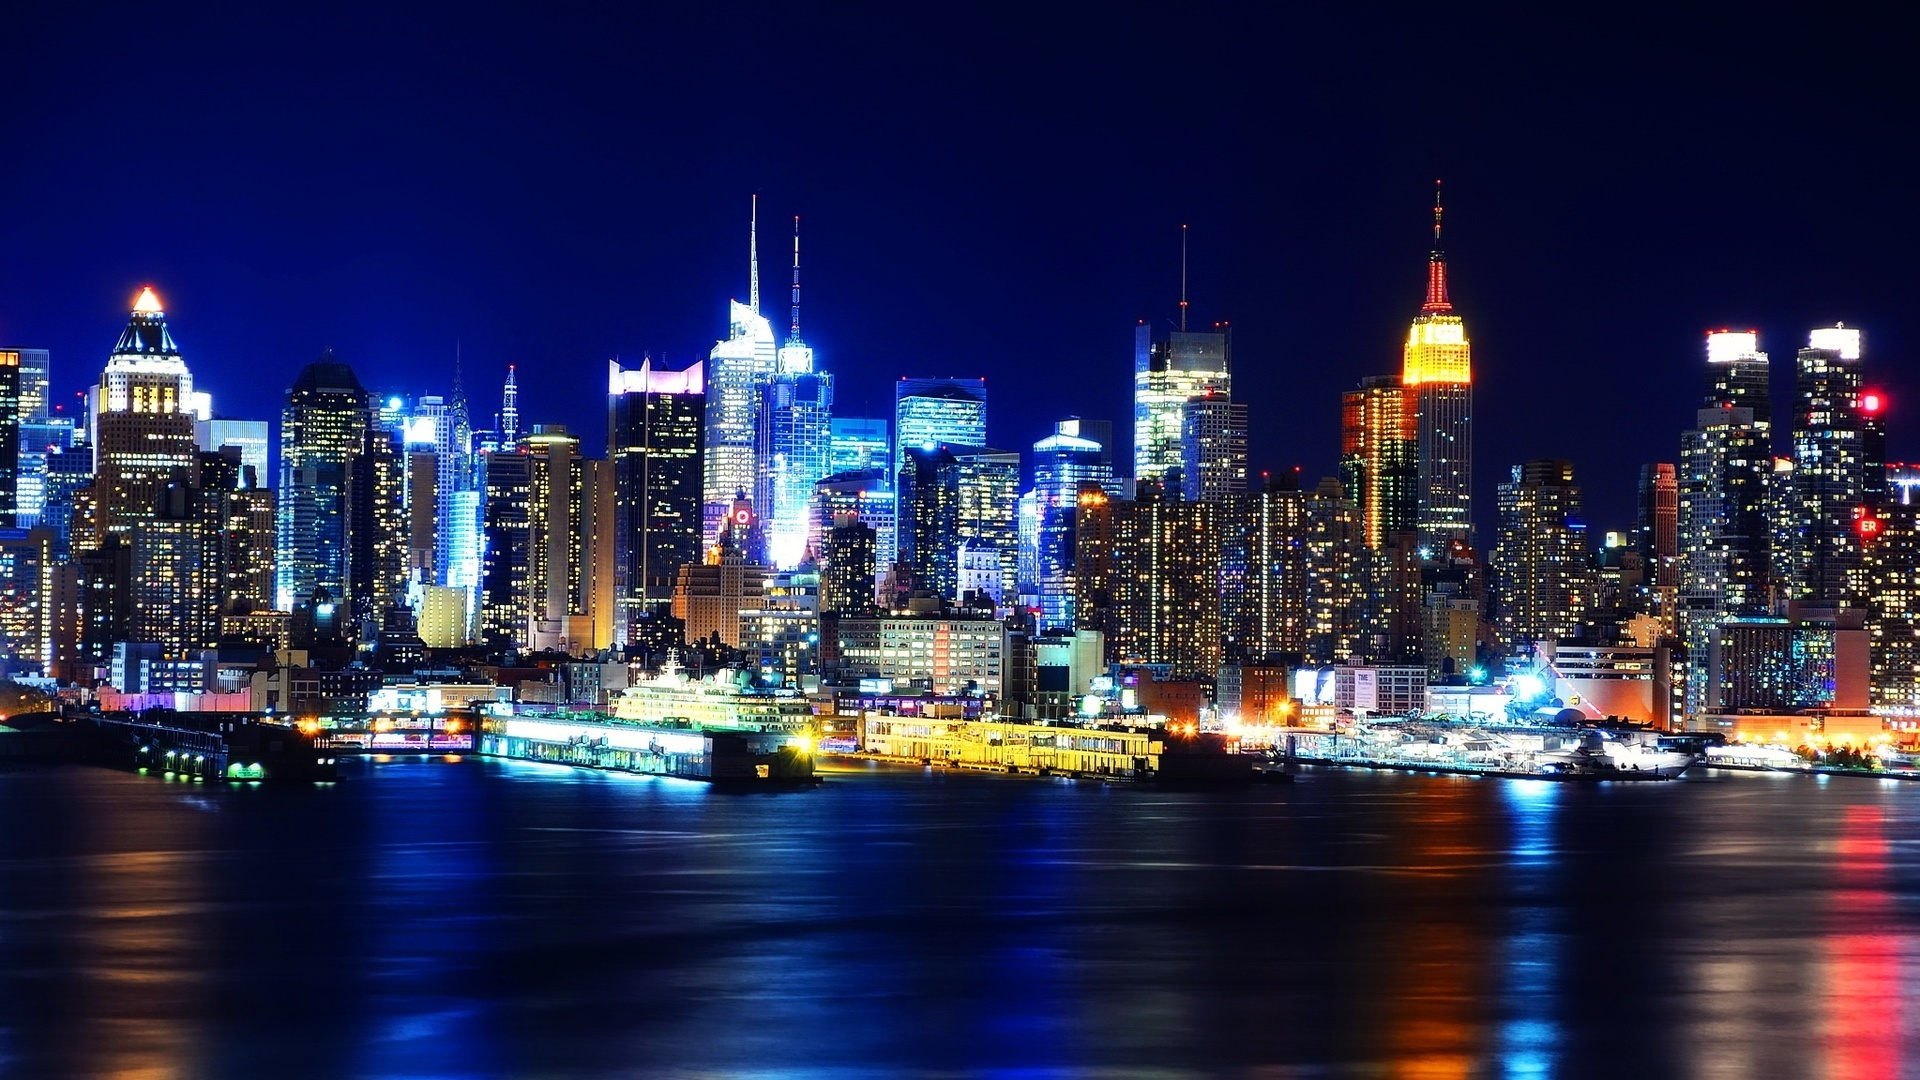 New York City at Night Wallpaper HD wallpaper background 1920x1080